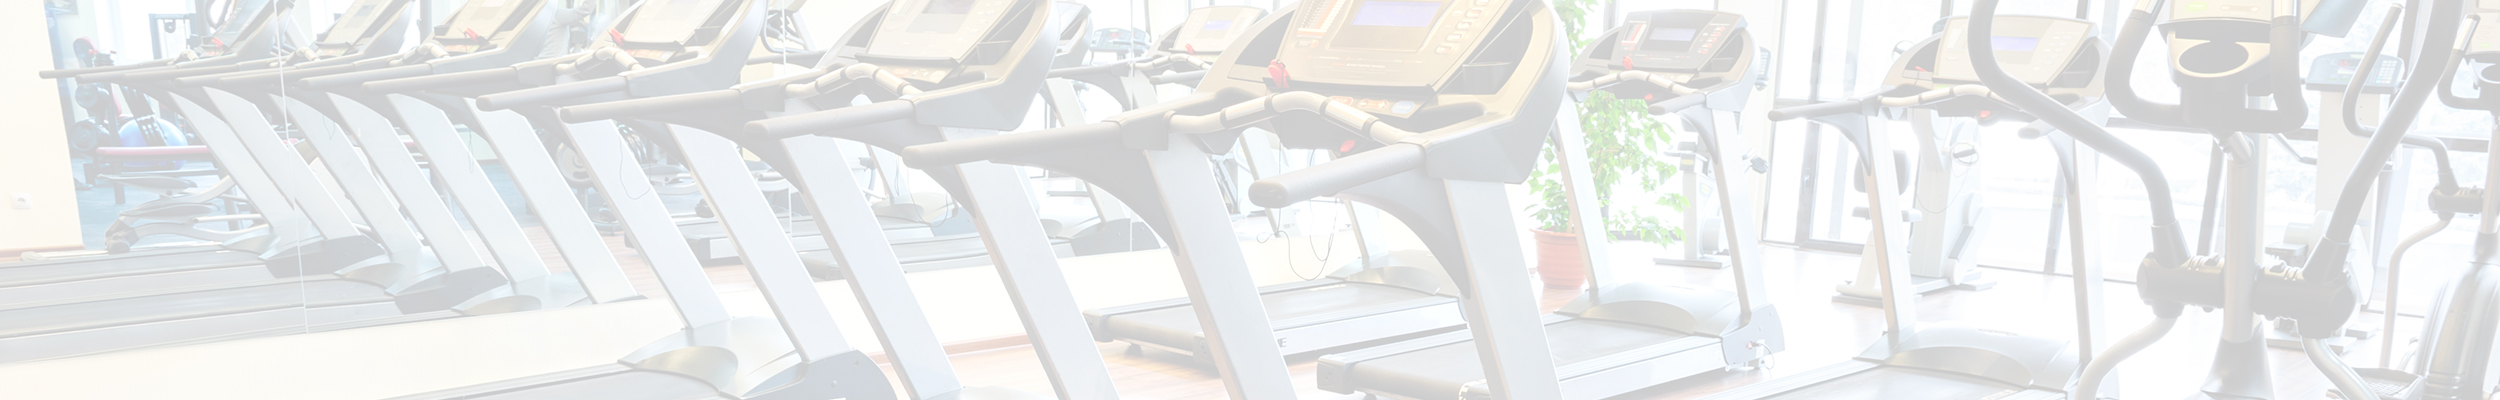 exercising with cancer